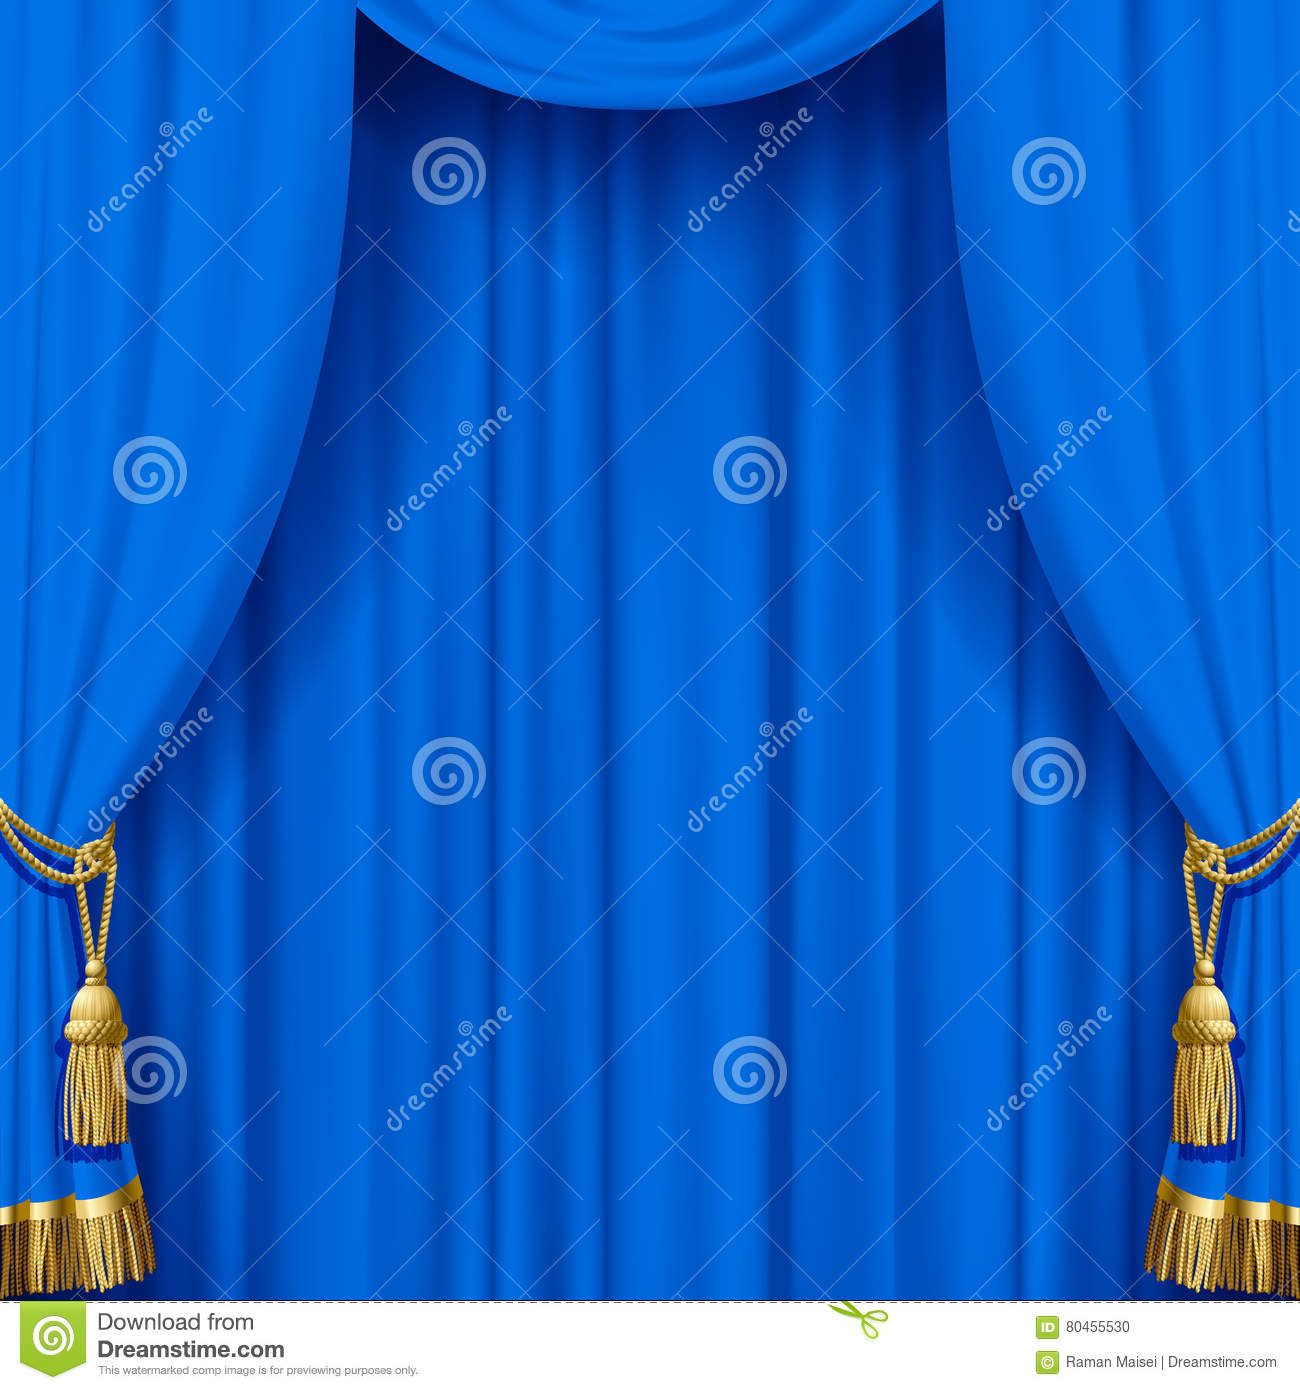 Blue curtain backdrop - Light Blue Curtain With Gold Tassels